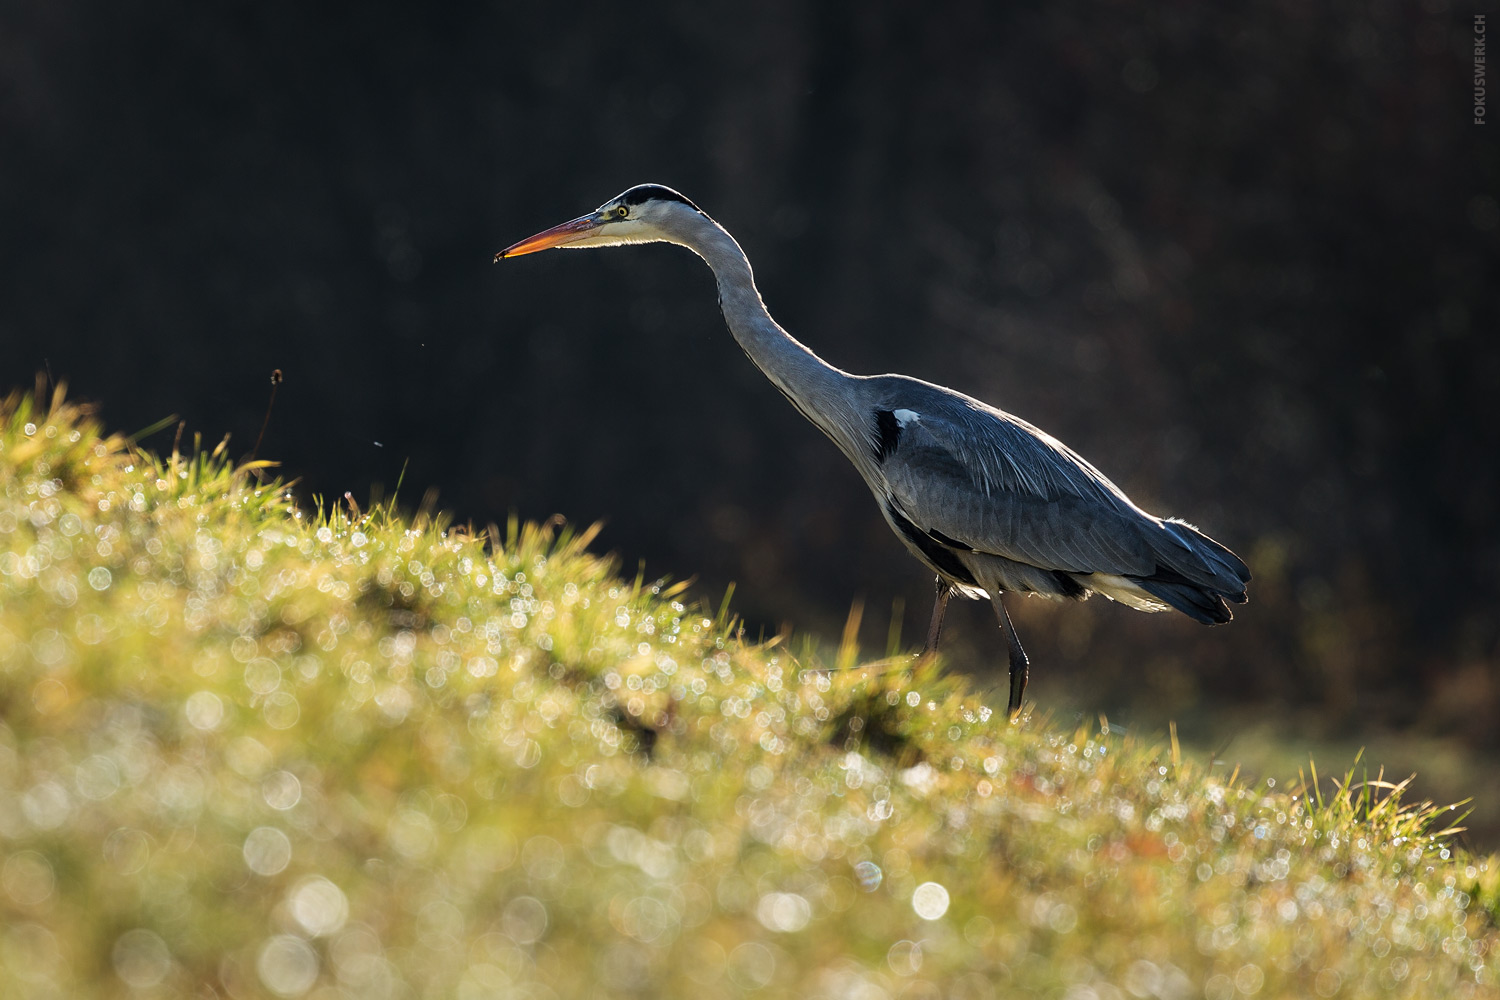 Grey heron searching for food